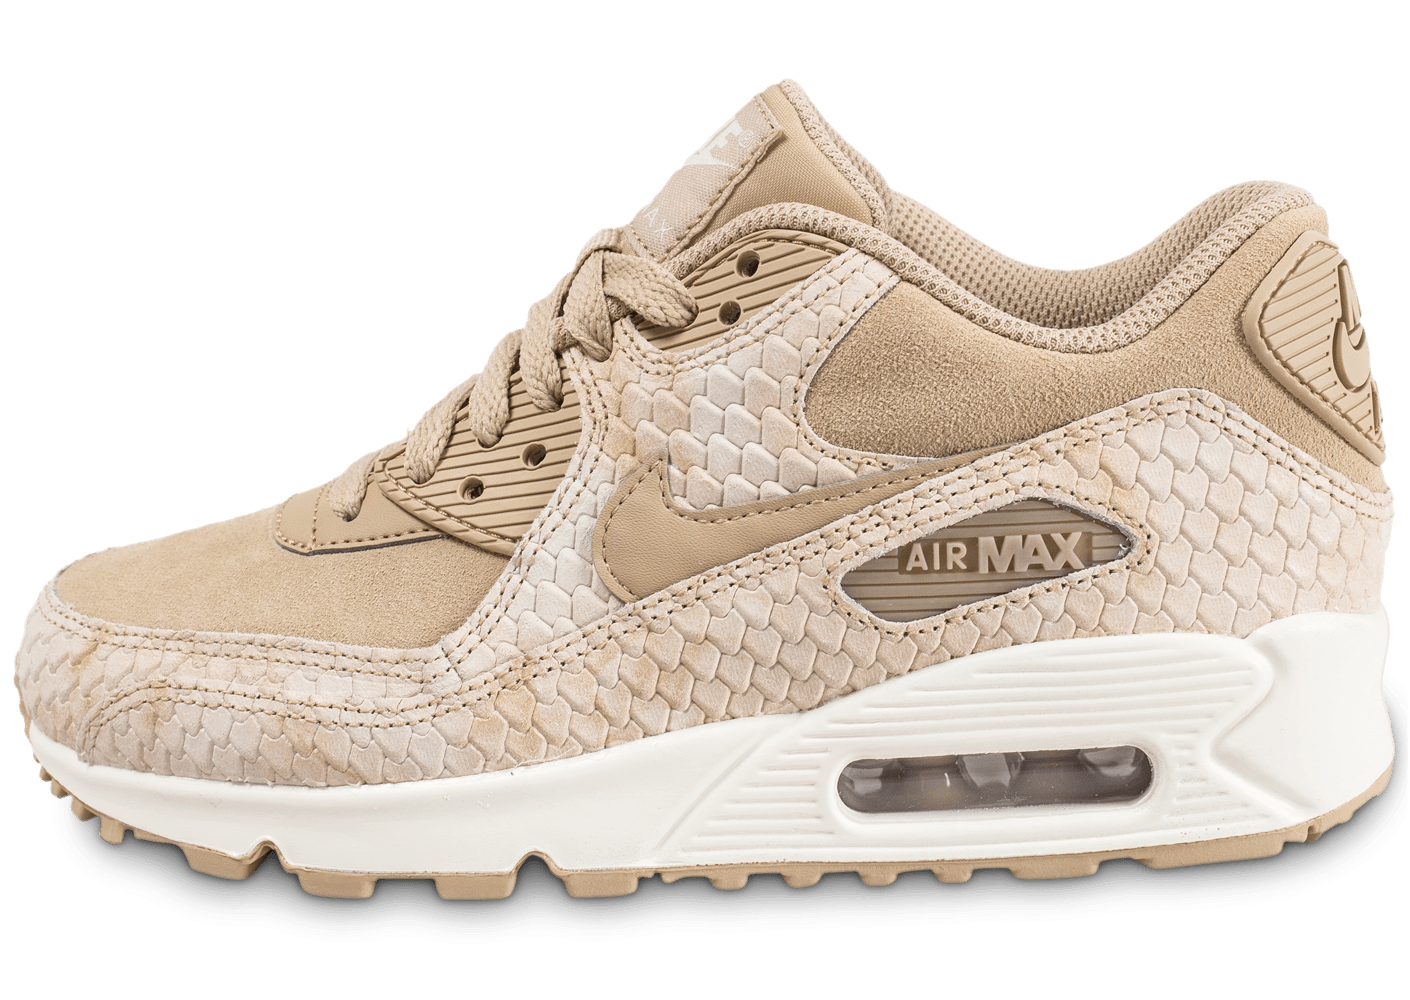 regarder b8cfa 8f409 Nike Air Max 90 Premium beige